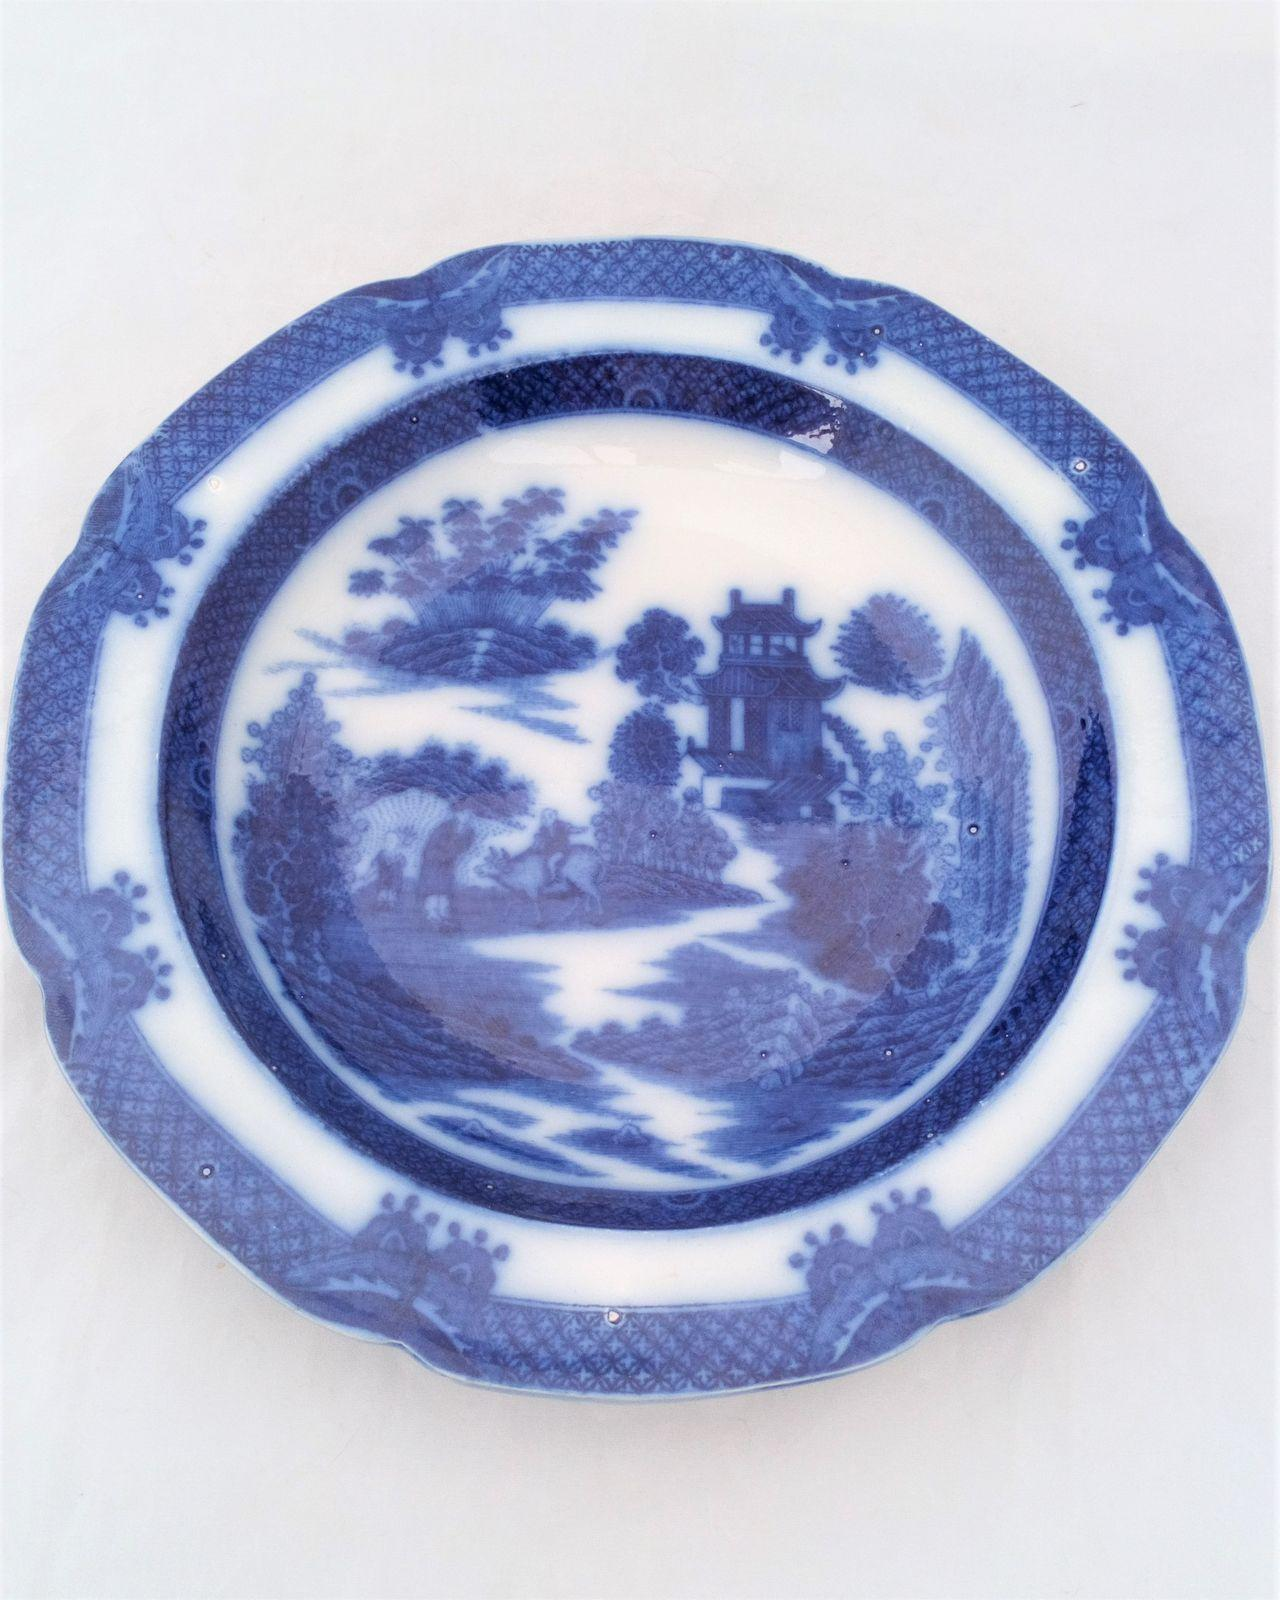 Antique Georgian blue and white Chinoiserie transferware Staffordshire pearlware plate boy on a buffalo pattern circa 1800